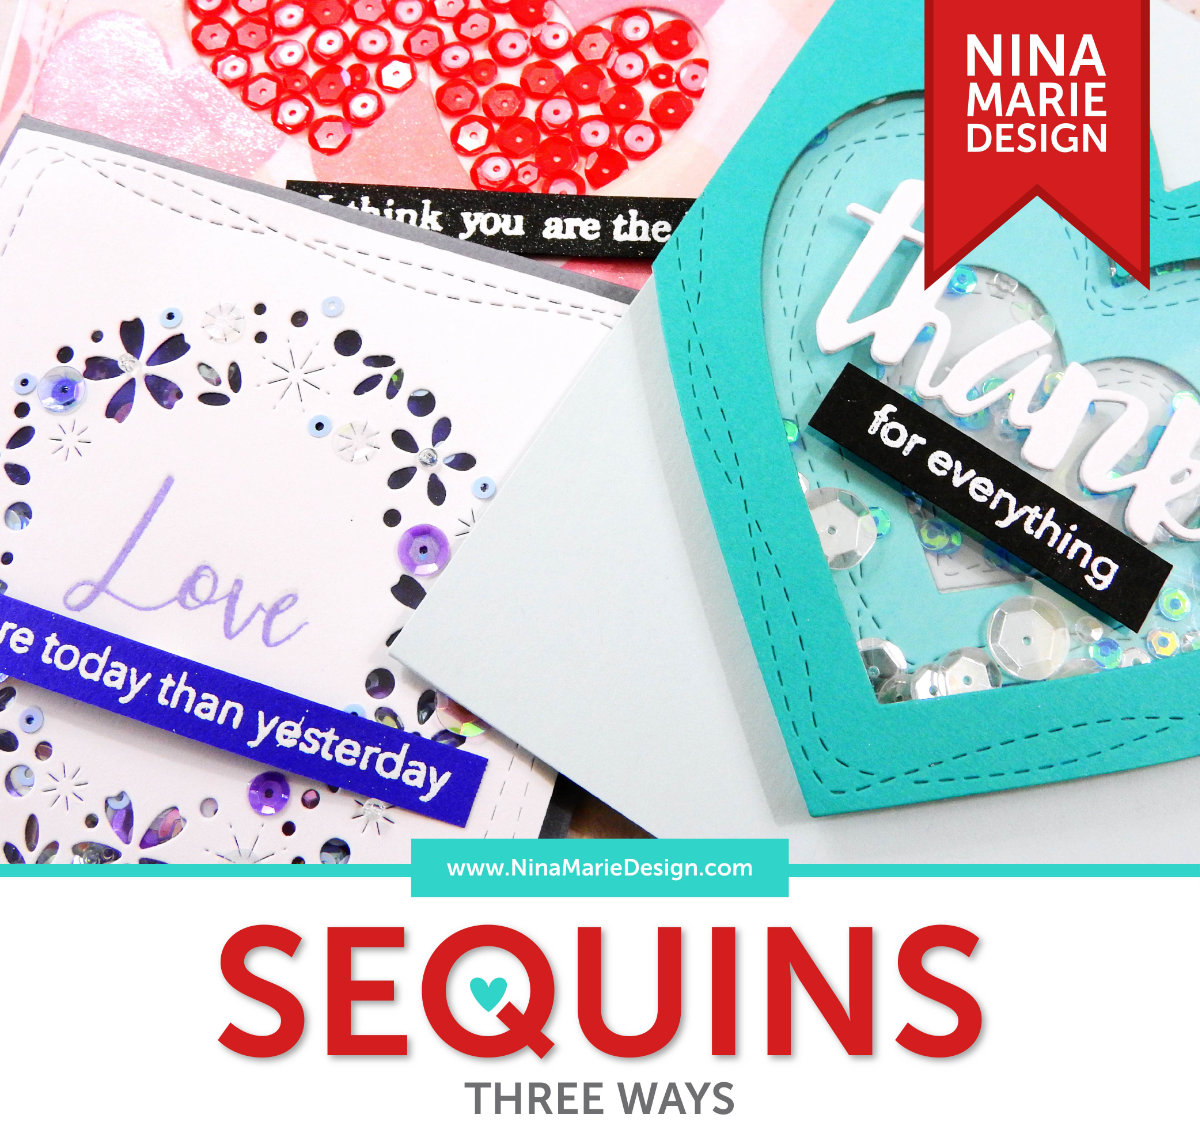 Sequins 3 Ways | Nina-Marie Design